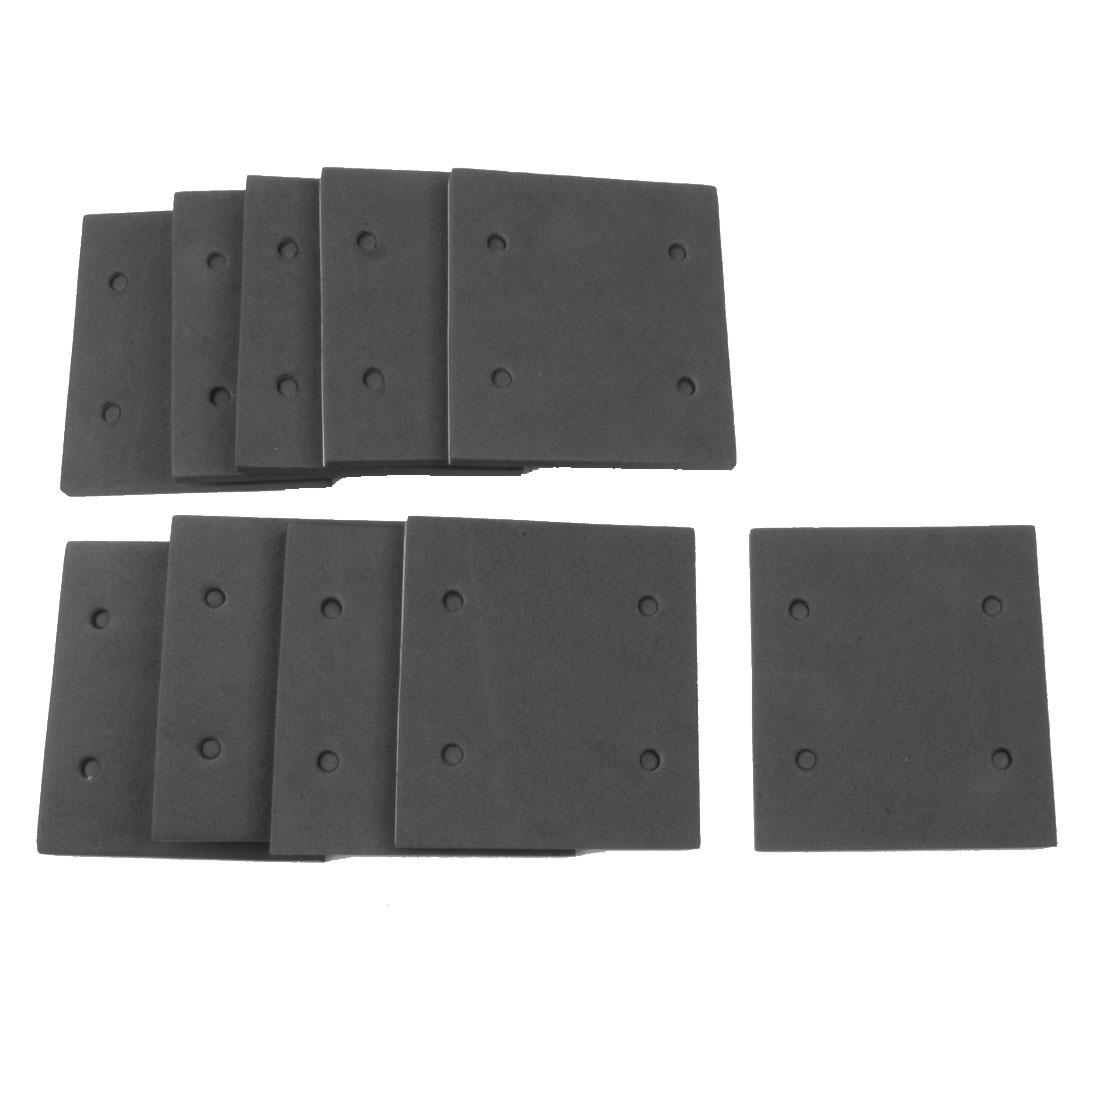 10 Pcs Gray Foam Self Adhesive Sander Back Pad Mat for Makita 4510